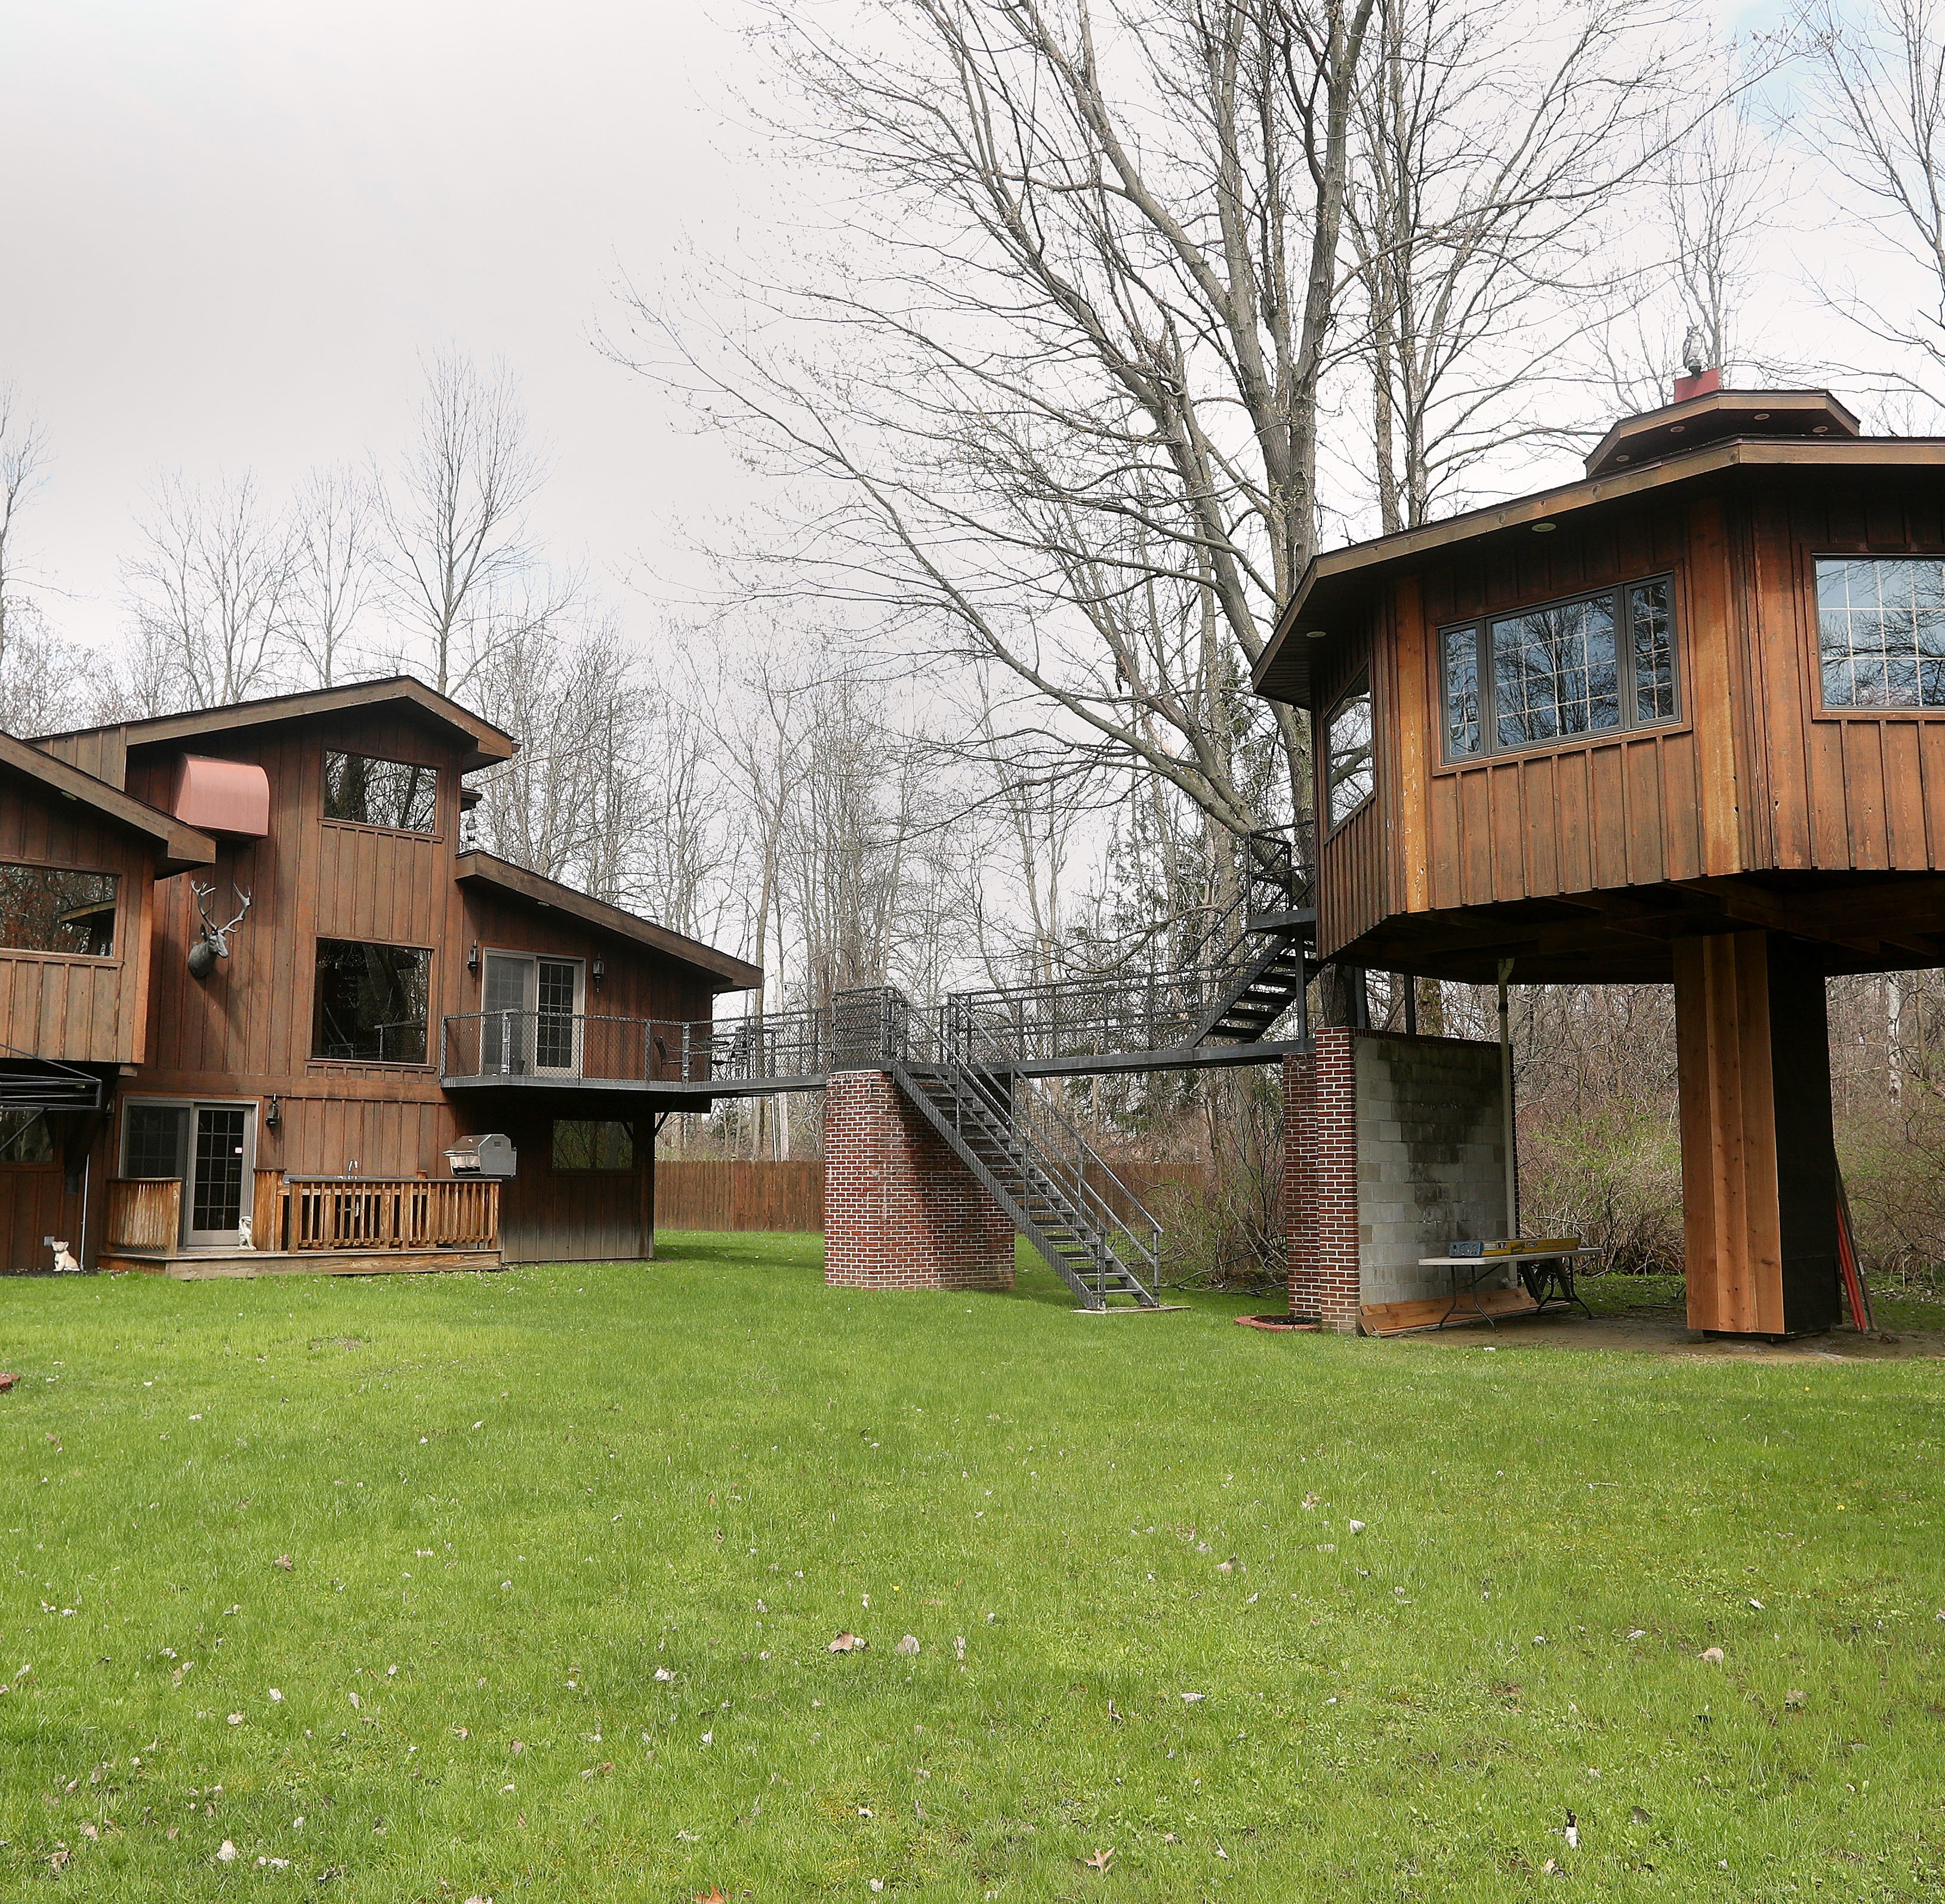 A home with the ultimate tree house: name your price between $500,000 to $674,900